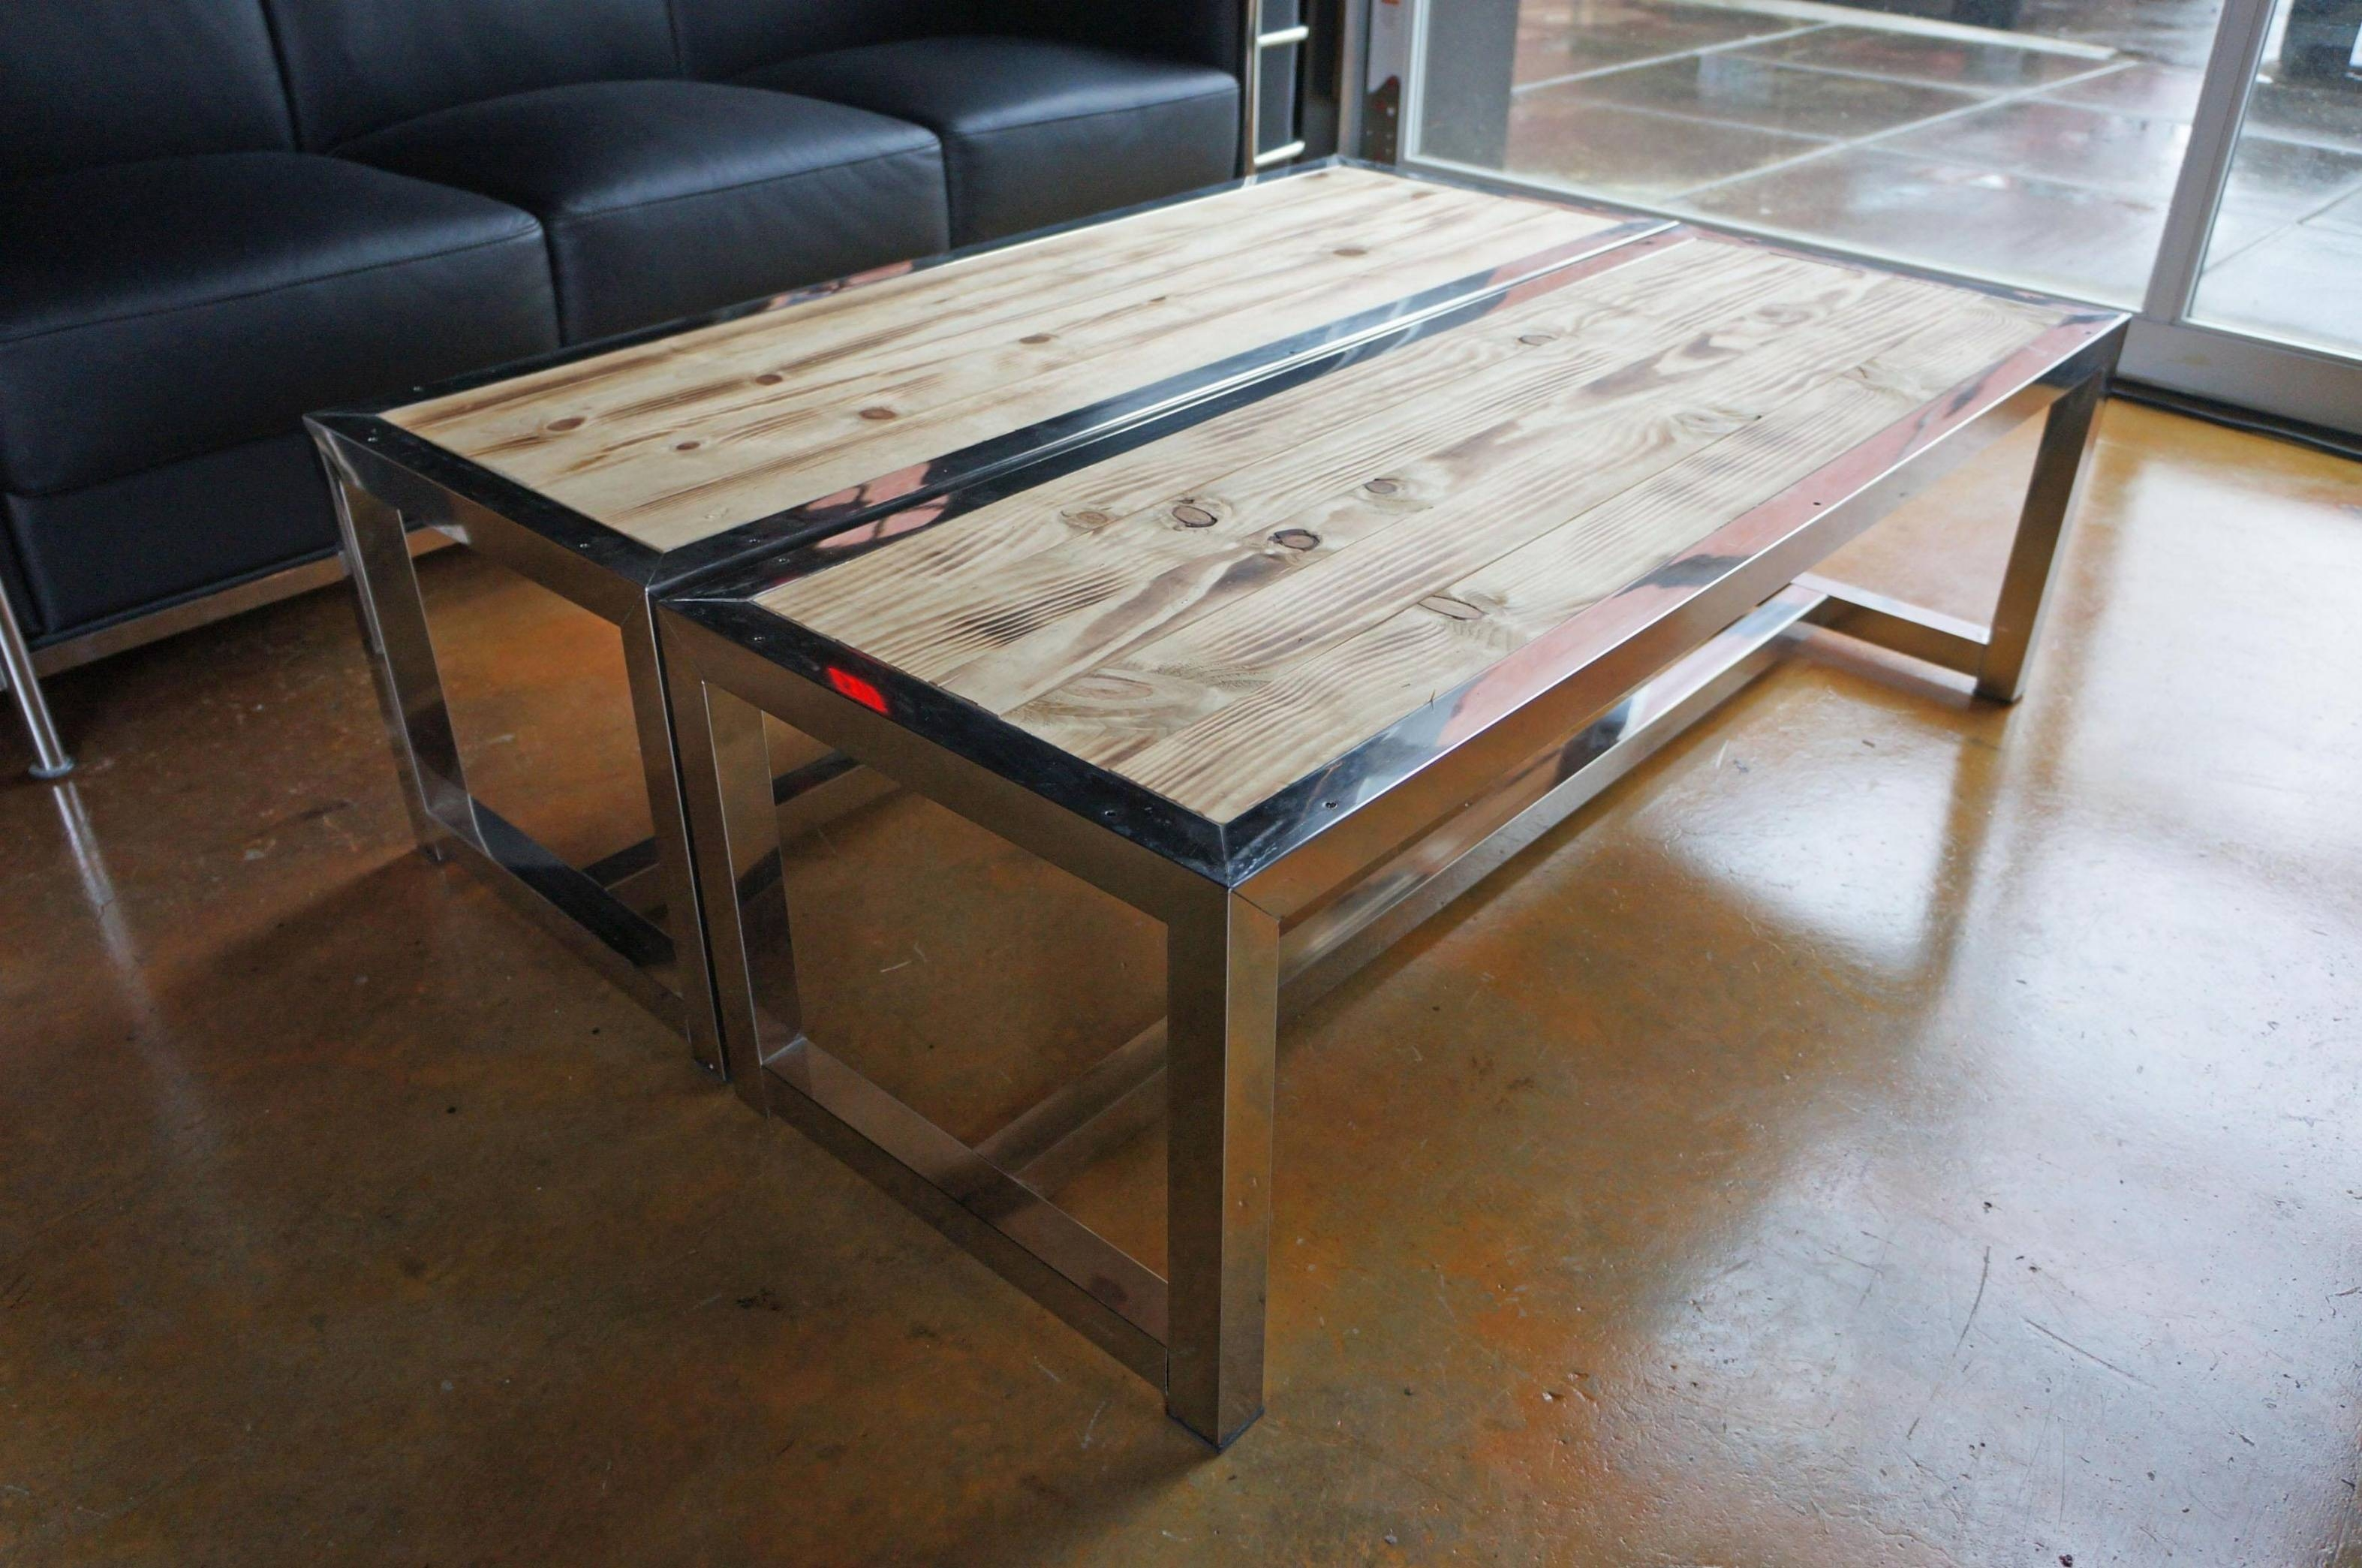 Wood And Chrome Coffee Table – Home Salers pertaining to Wood Chrome Coffee Tables (Image 28 of 30)